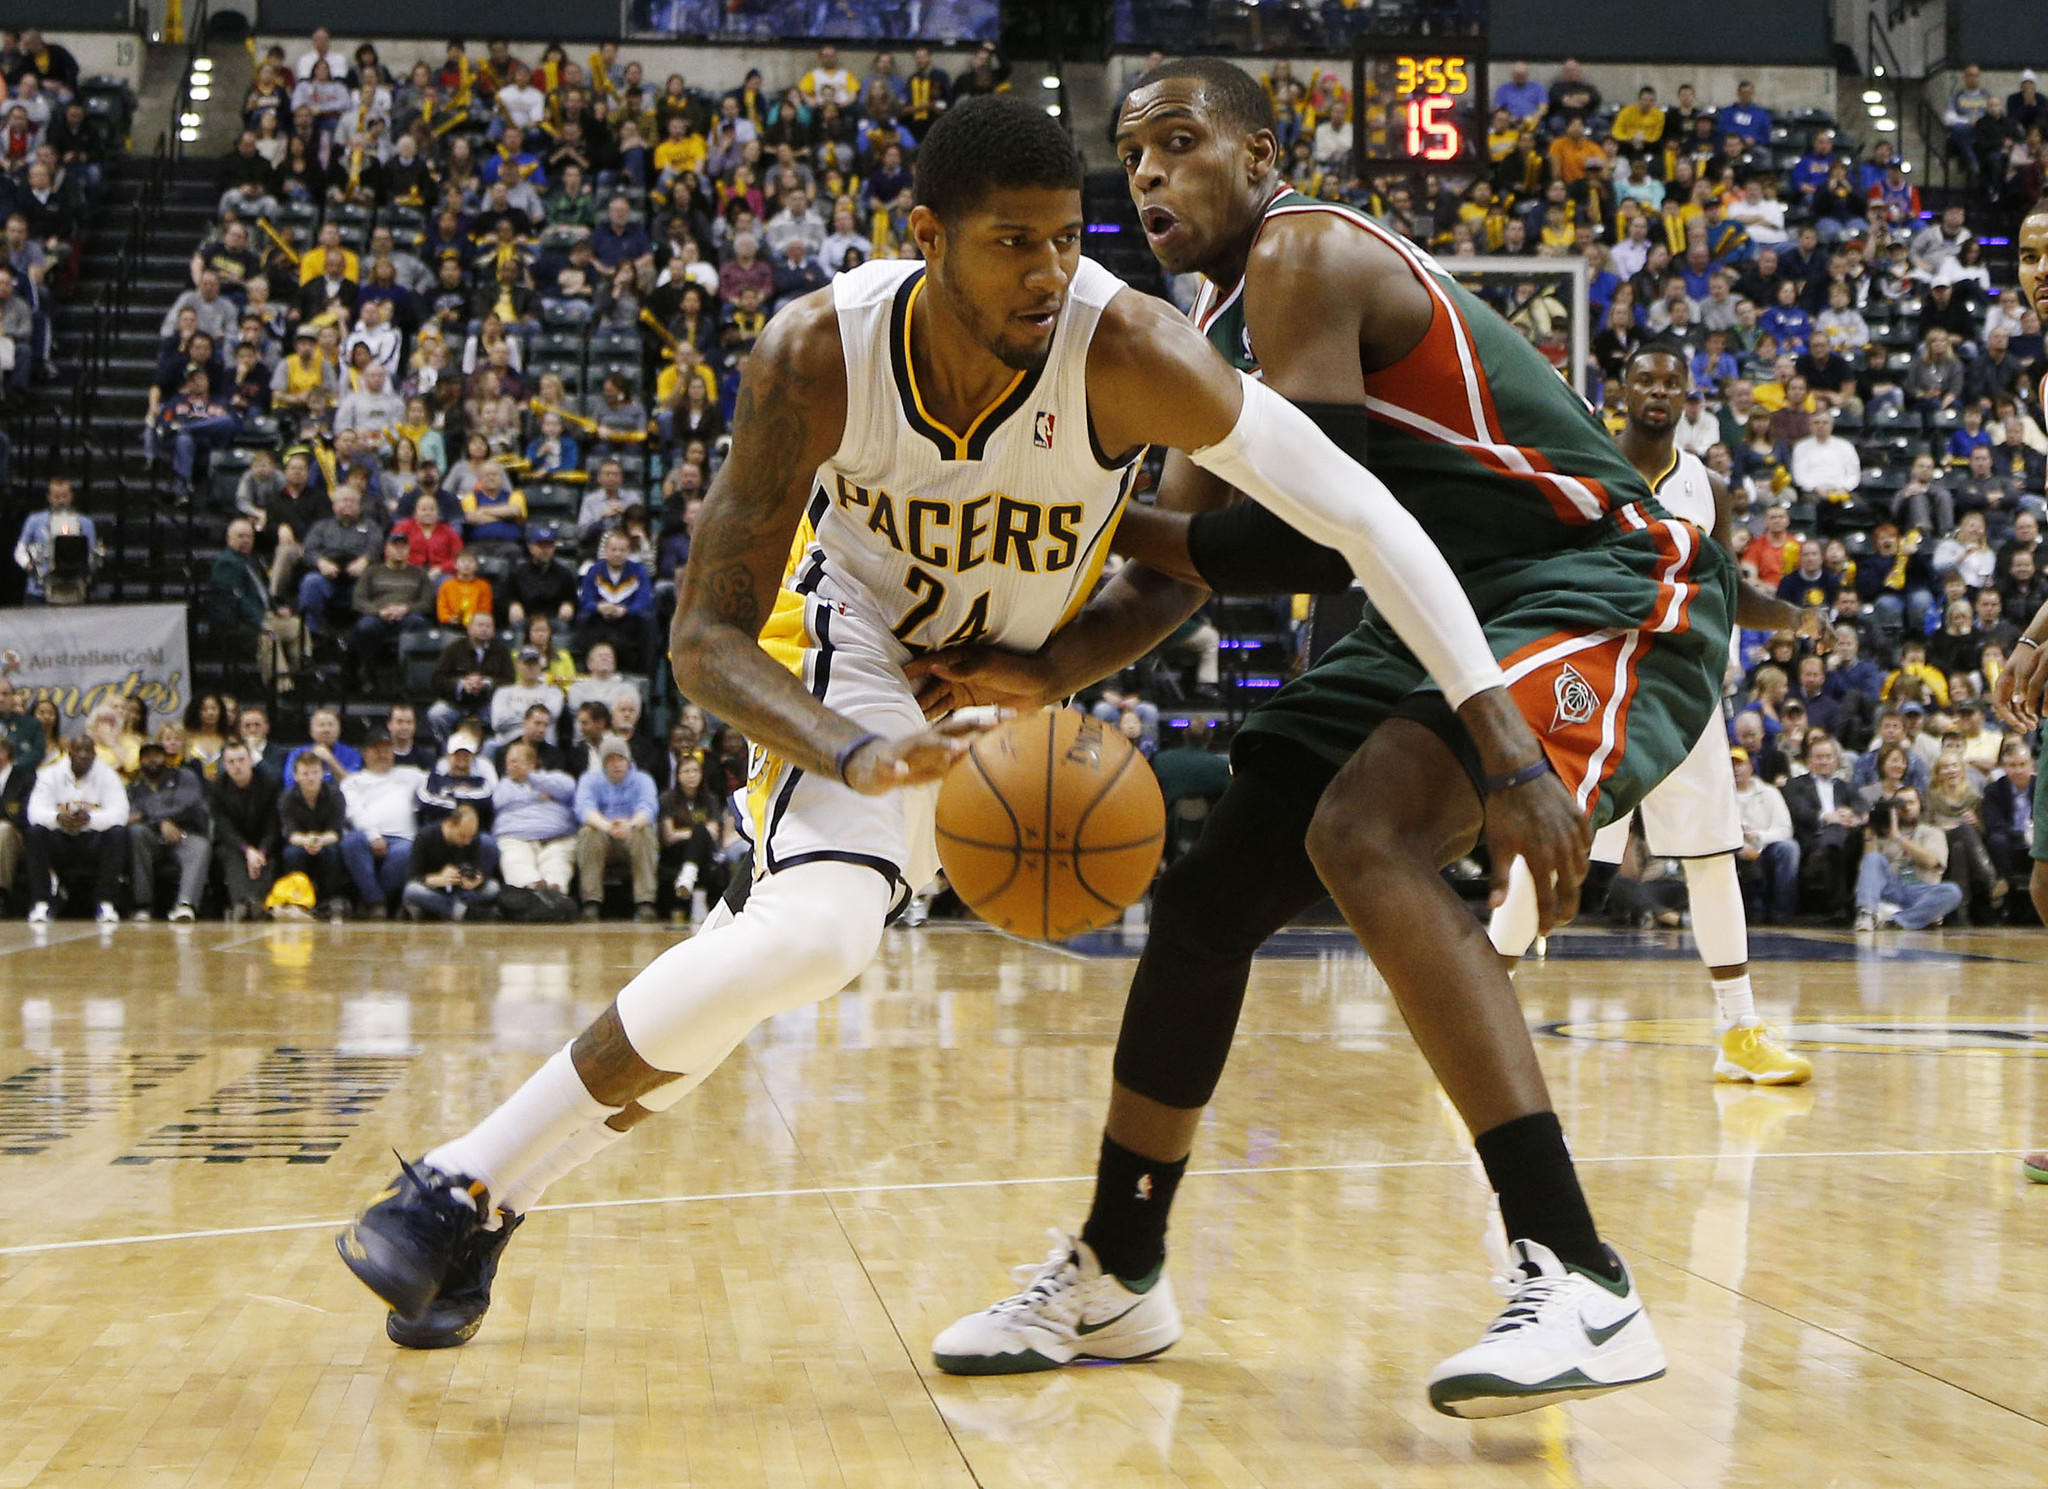 Indiana Pacers forward Paul George (24) dribbles the ball around Milwaukee Bucks forward Khris Middleton (22) at Bankers Life Fieldhouse. The Pacers won 101-96.